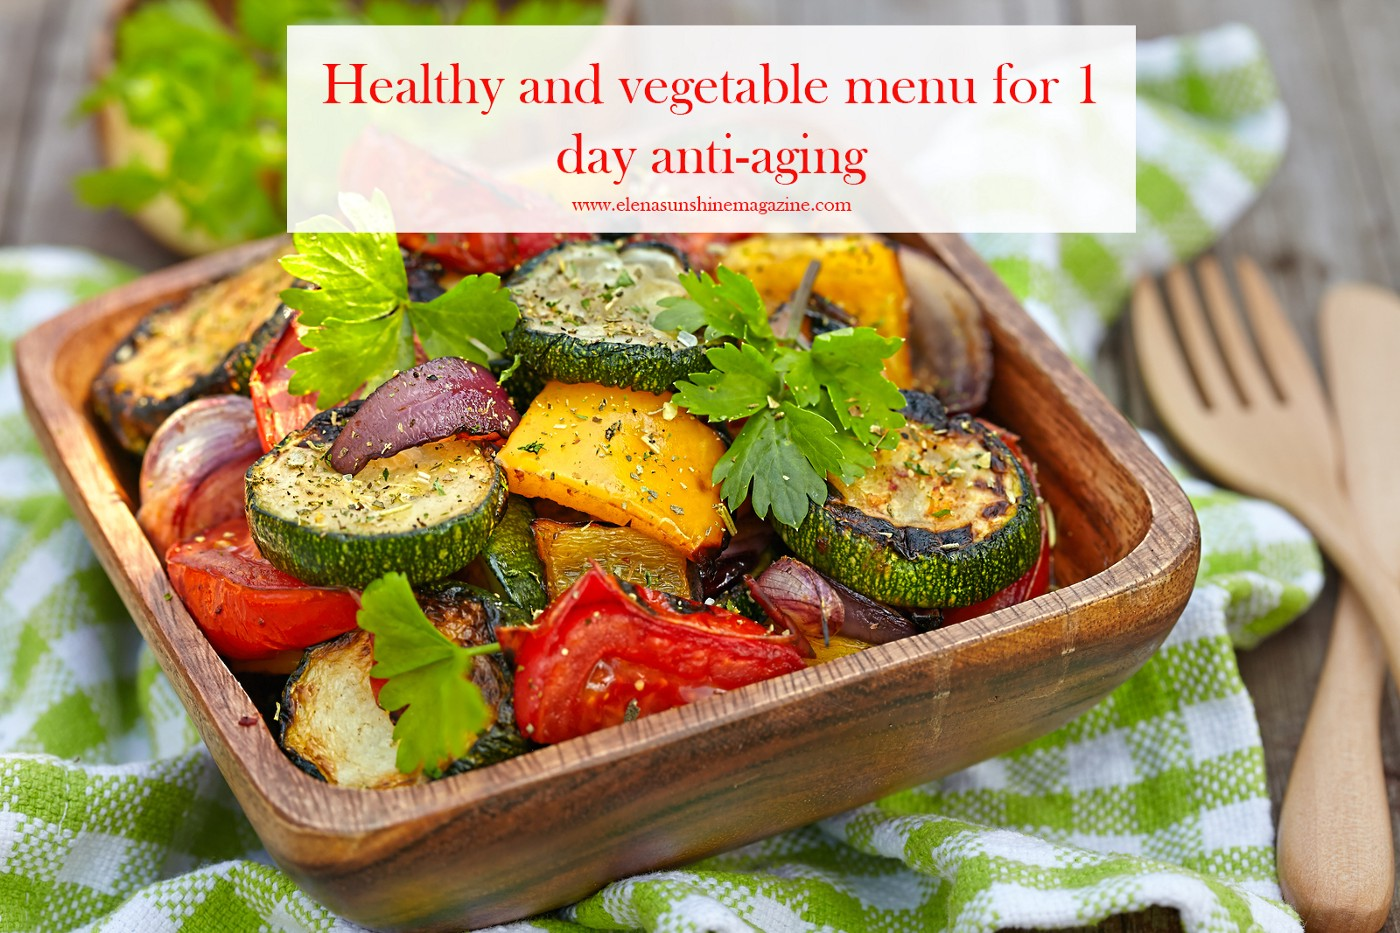 Healthy and vegetable menu for 1 day anti-aging